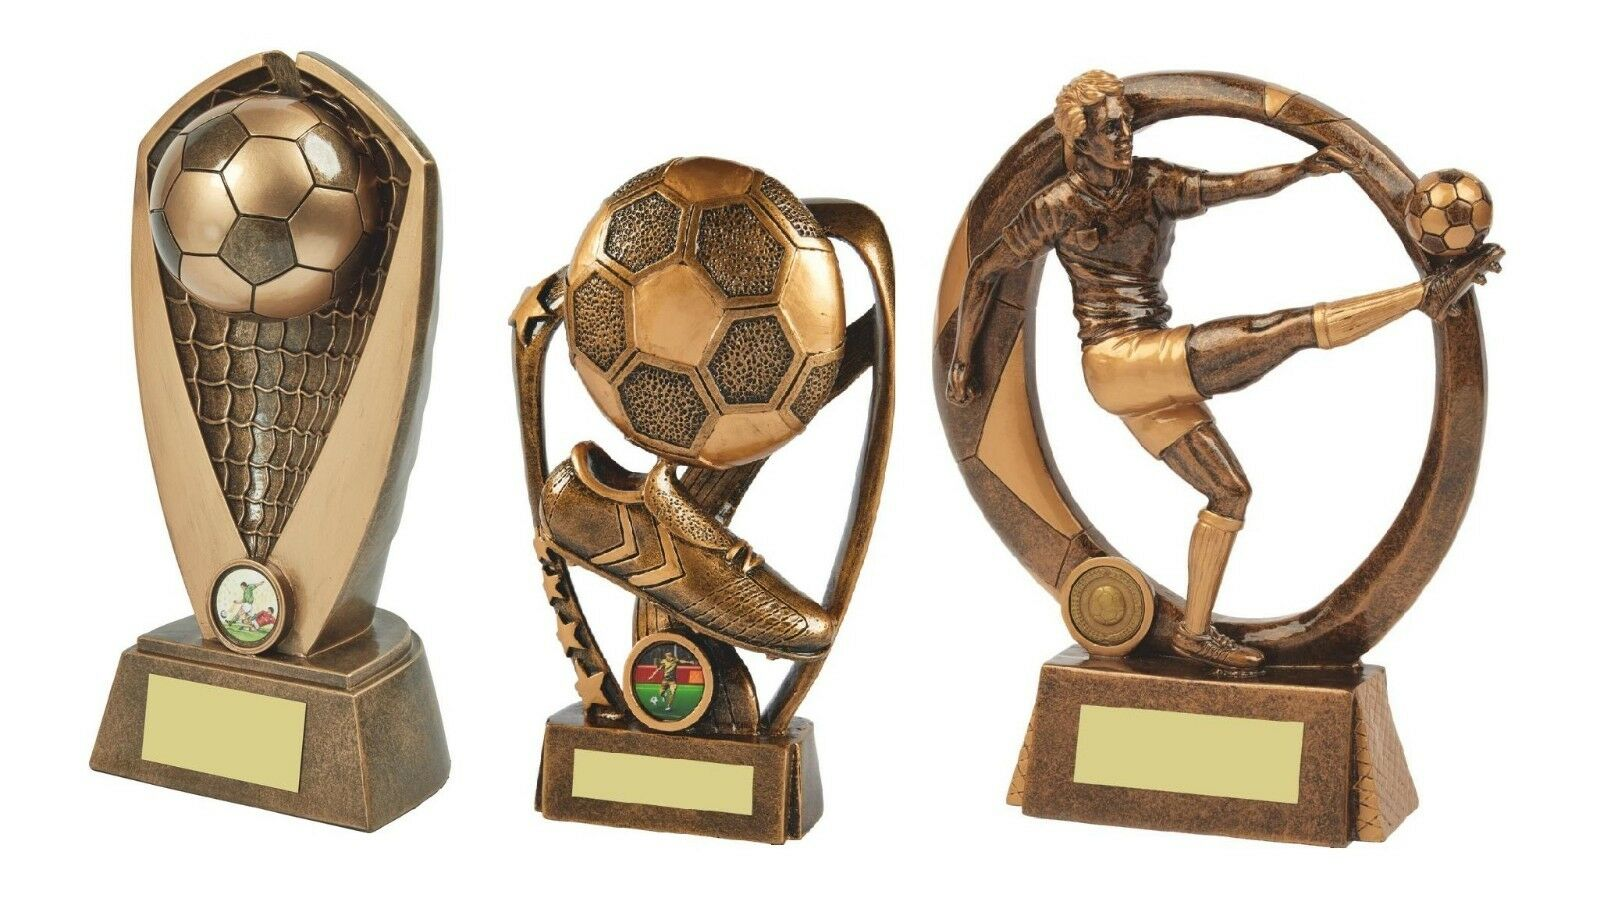 2x 10 & 1x 8 3 4 inch Football Trophy Awards engraved + posted free (RRP .40)